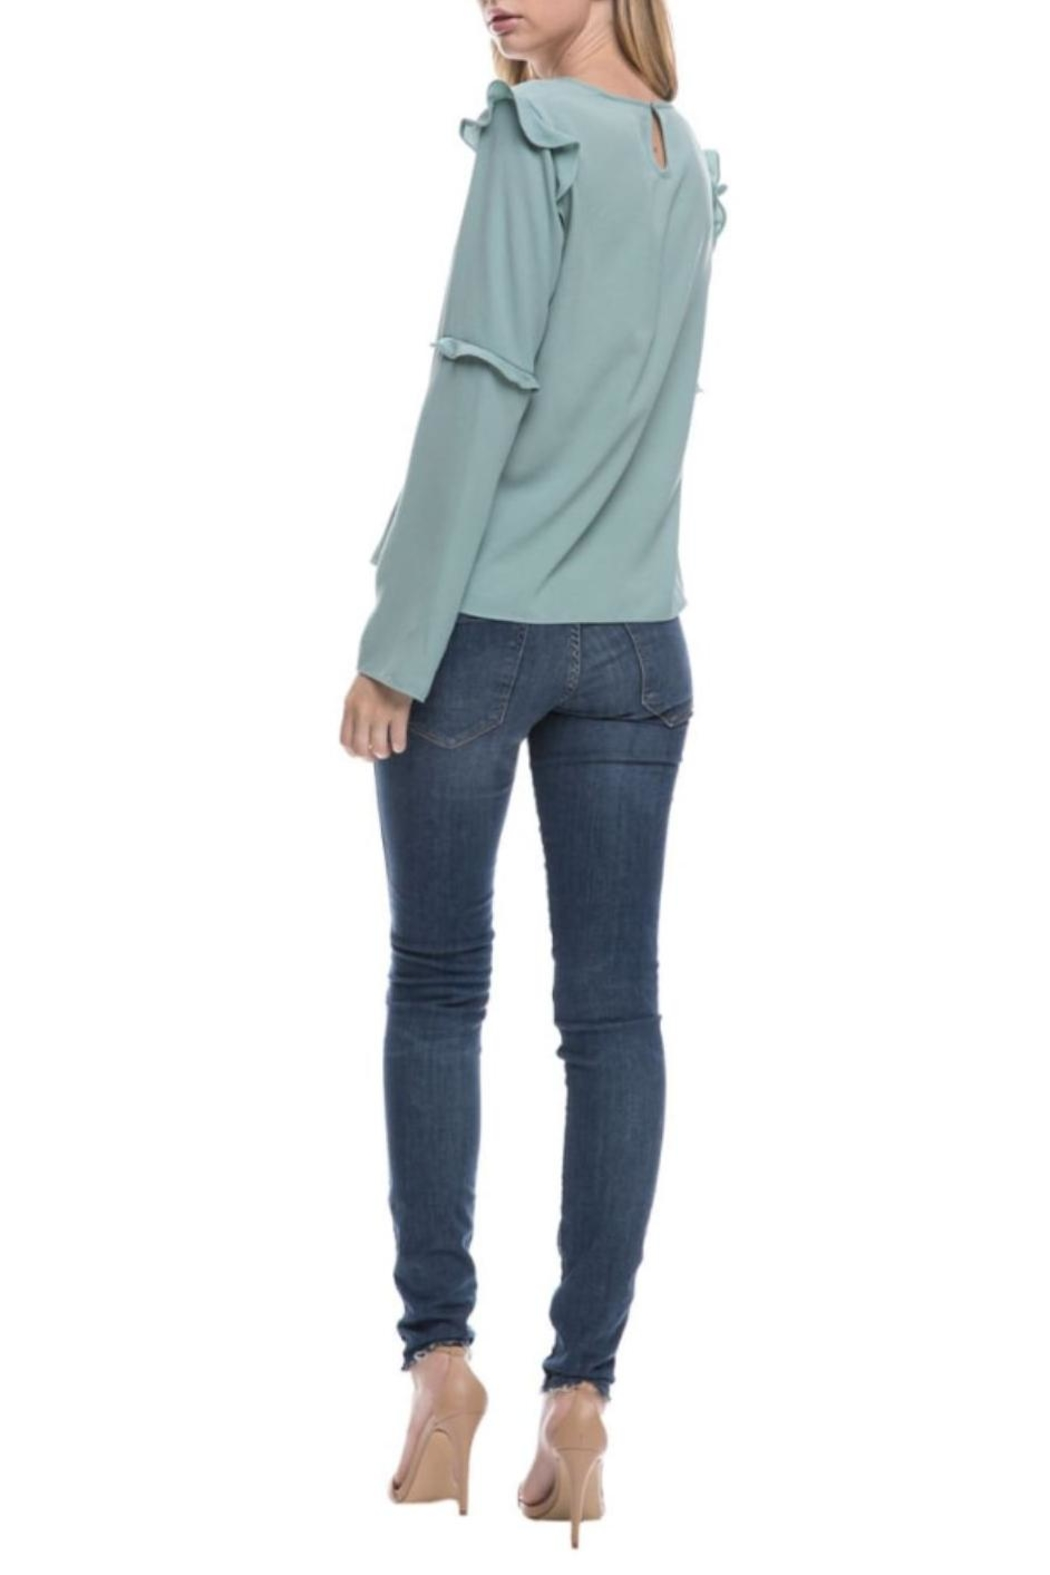 After Market Seafoam Ruffle Top - Side Cropped Image